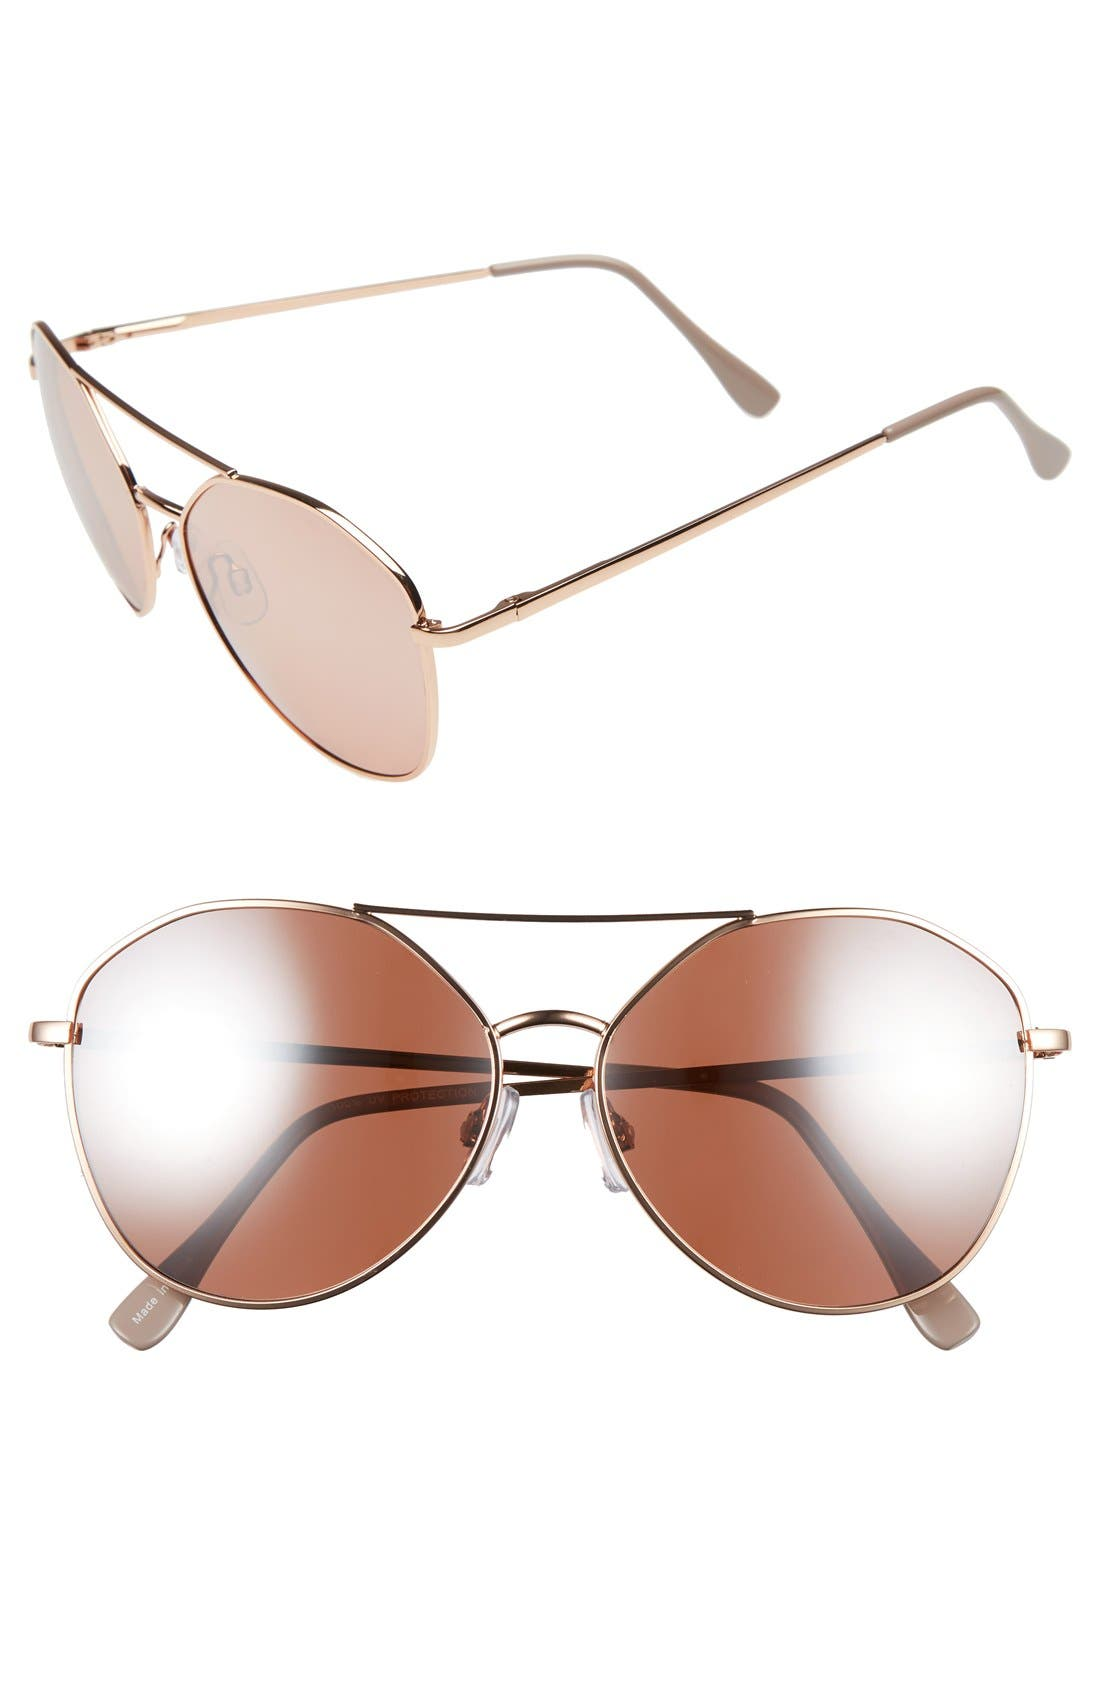 Main Image - BP. Slingshot 58mm Aviator Sunglasses